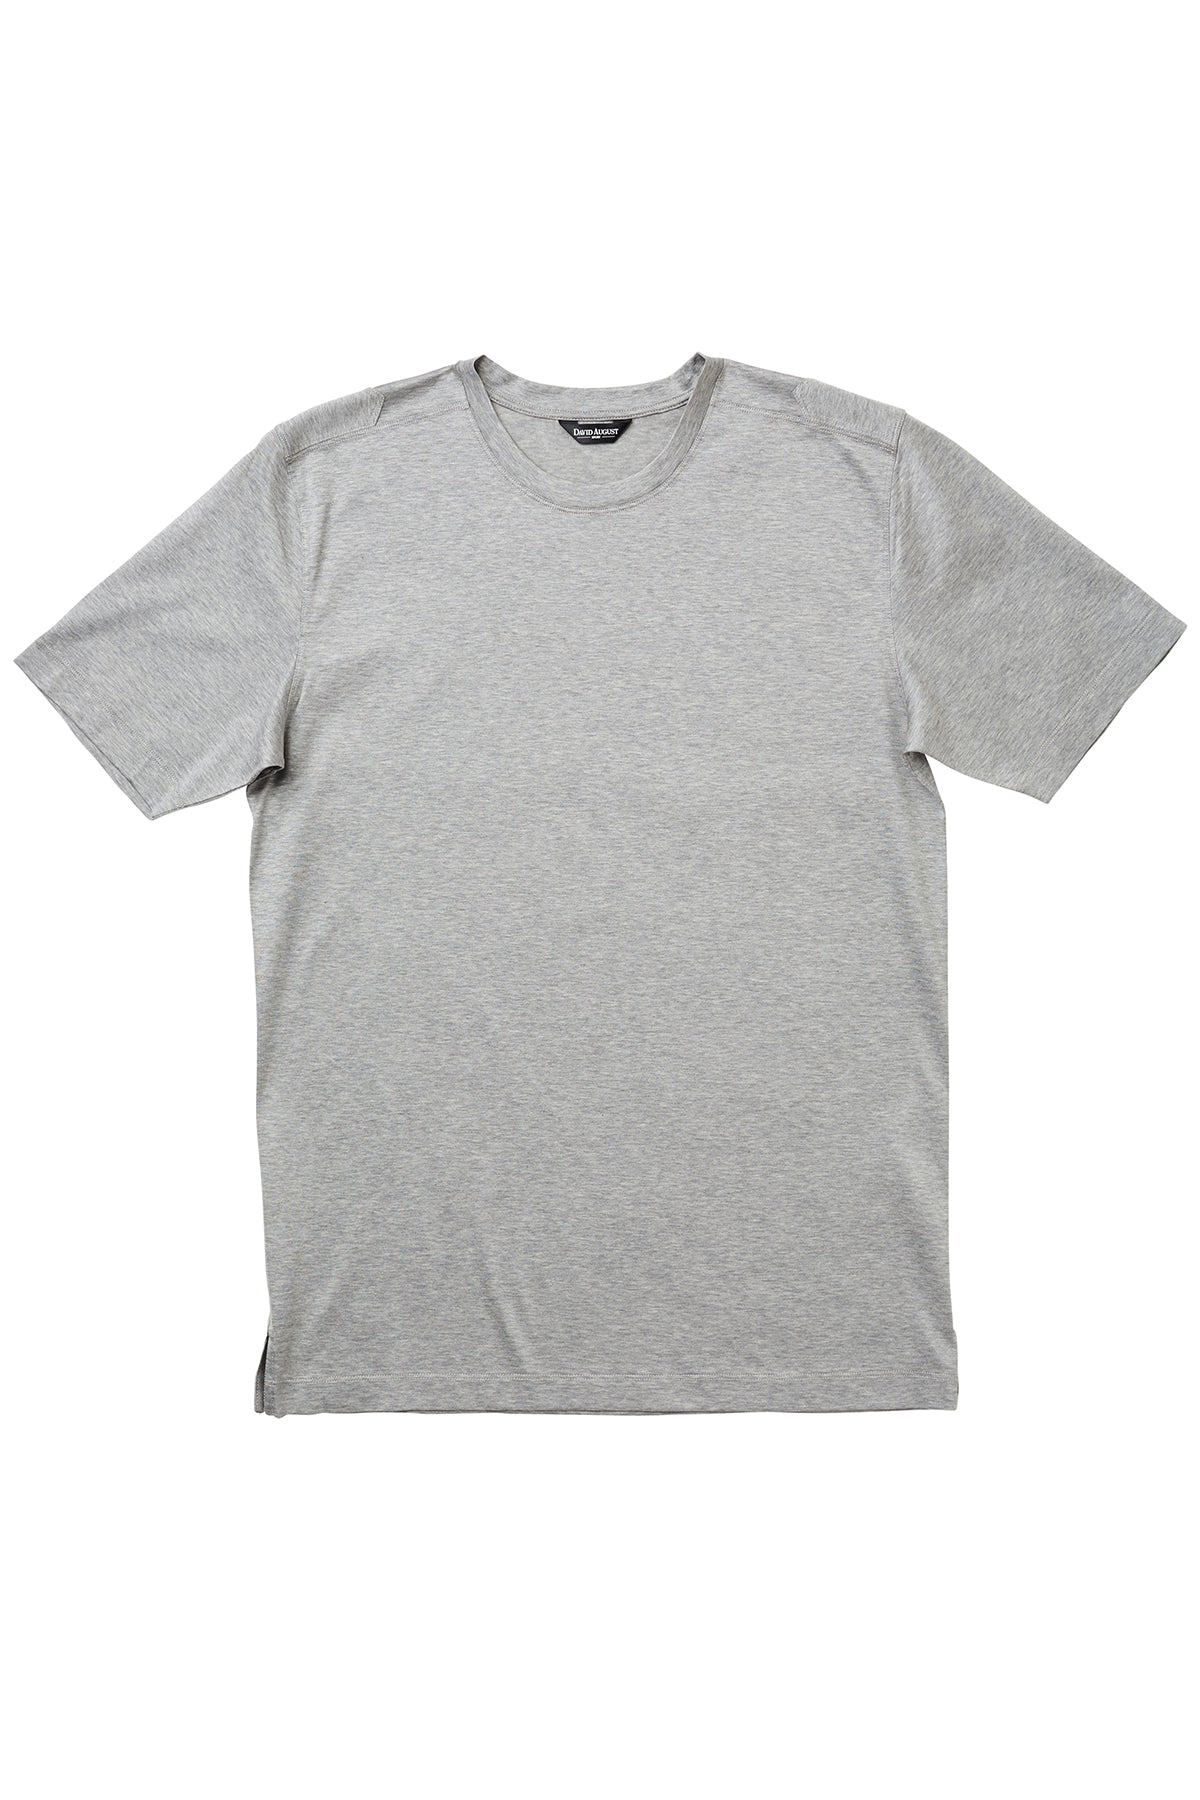 Luxury Mercerized Cotton T-Shirt Crew Neck in Light Heather Grey